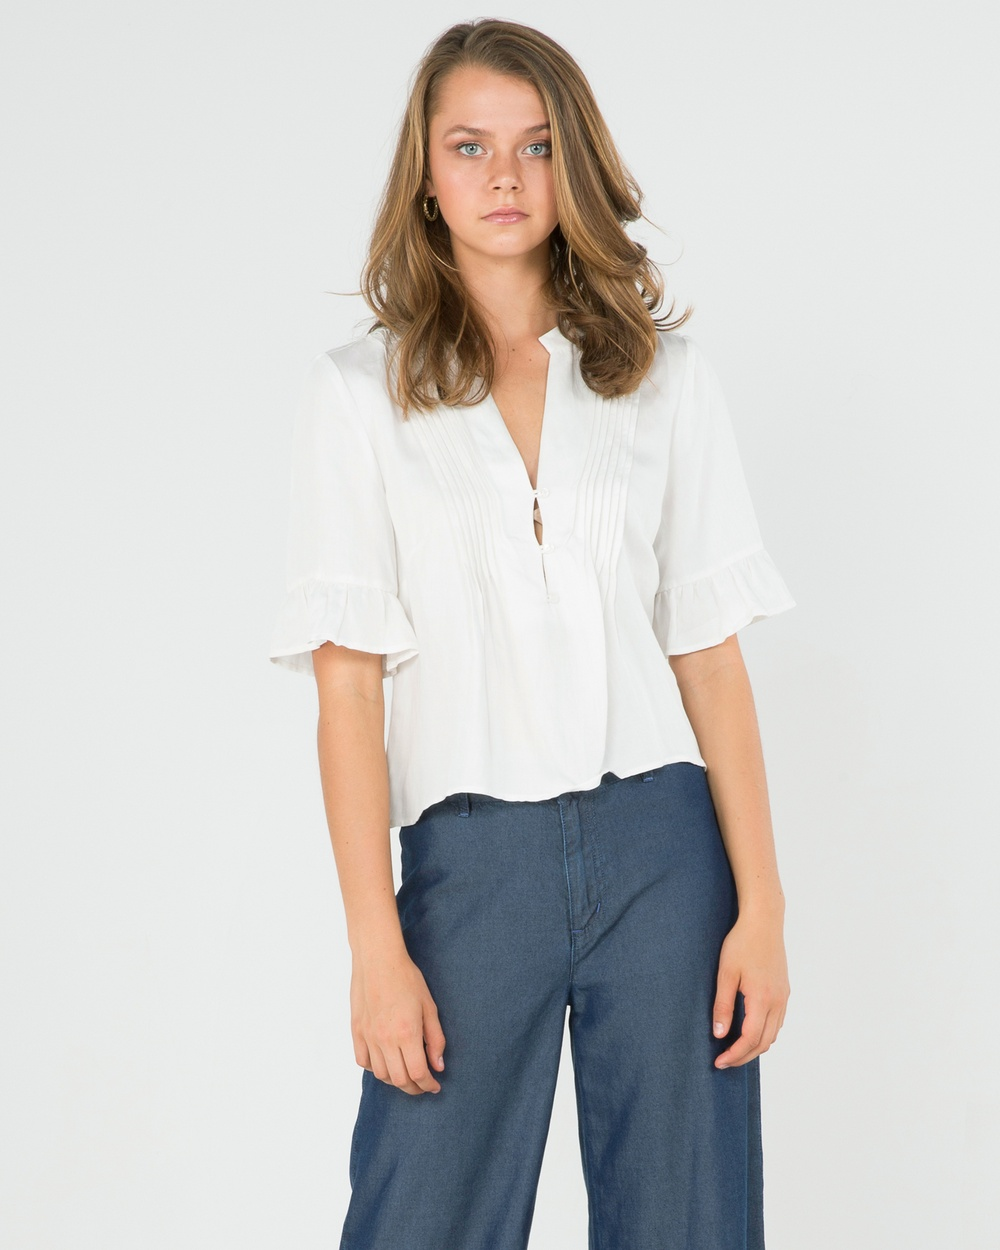 Amelius Masa Blouse Cropped tops White Masa Blouse